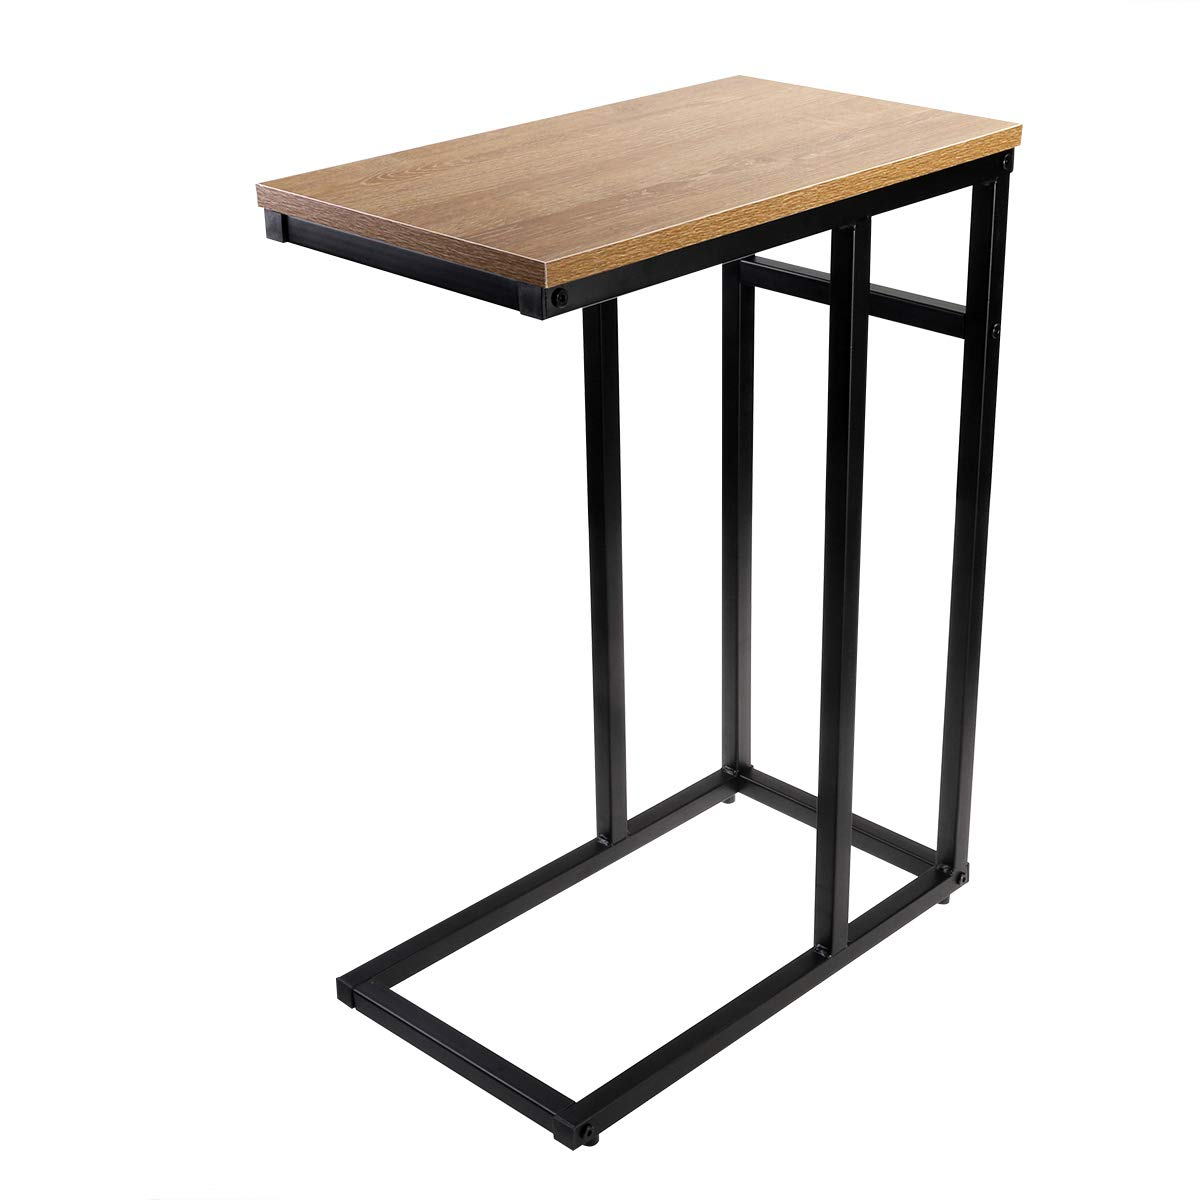 homemaxs sofa side end table small snack accent with wood finish and steel construction for coffee tablet home kitchen half circle console glass top patio dining corner accents